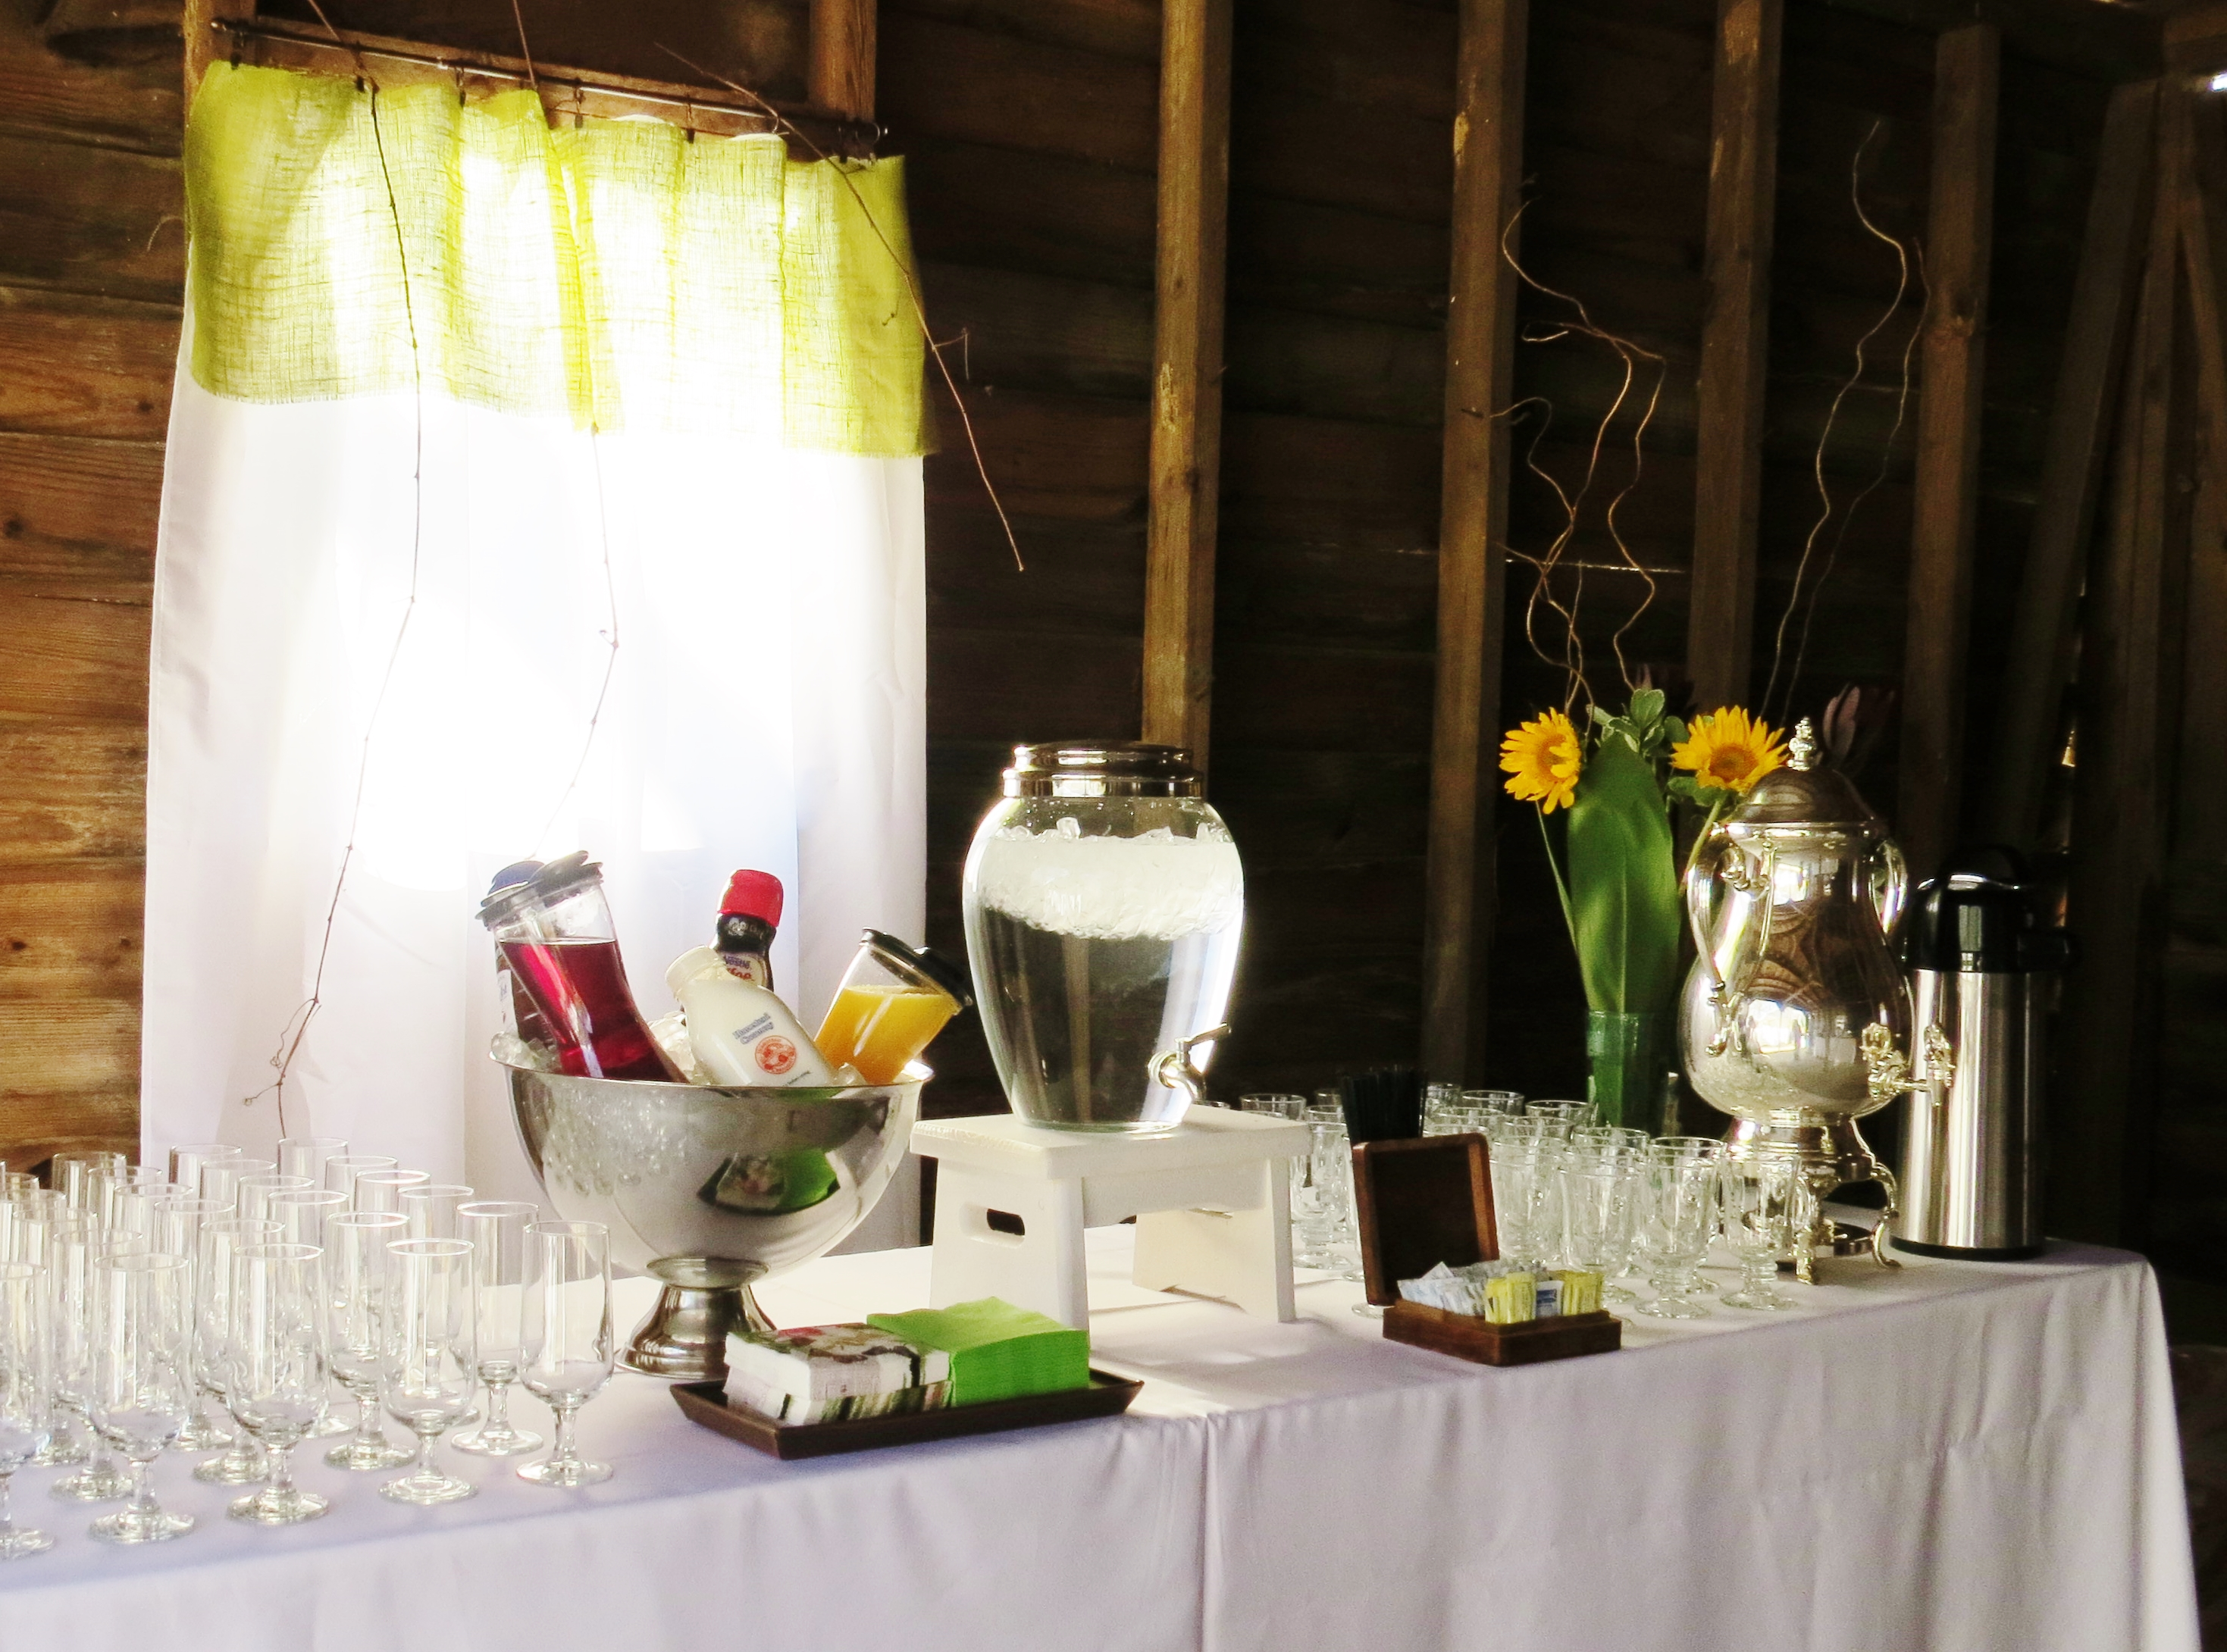 Beverage station at the brunch. Coffee, juices and water